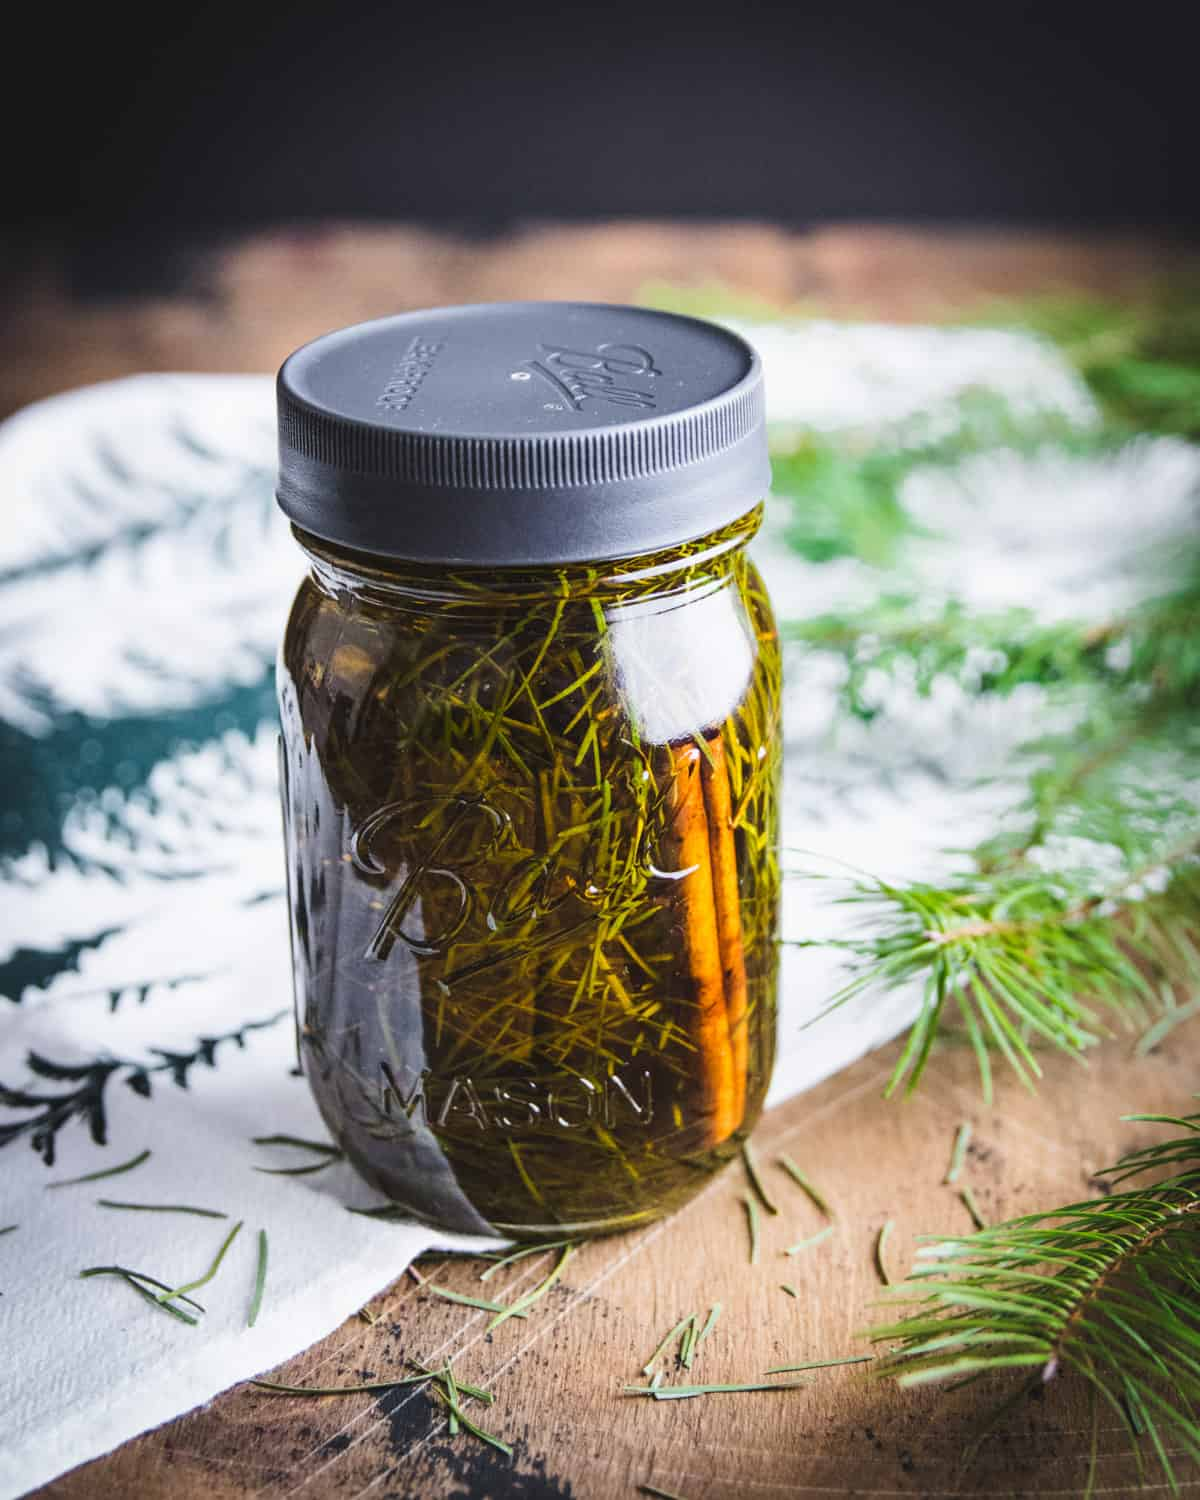 a jar of conifer infused oil with a cinnamon stick